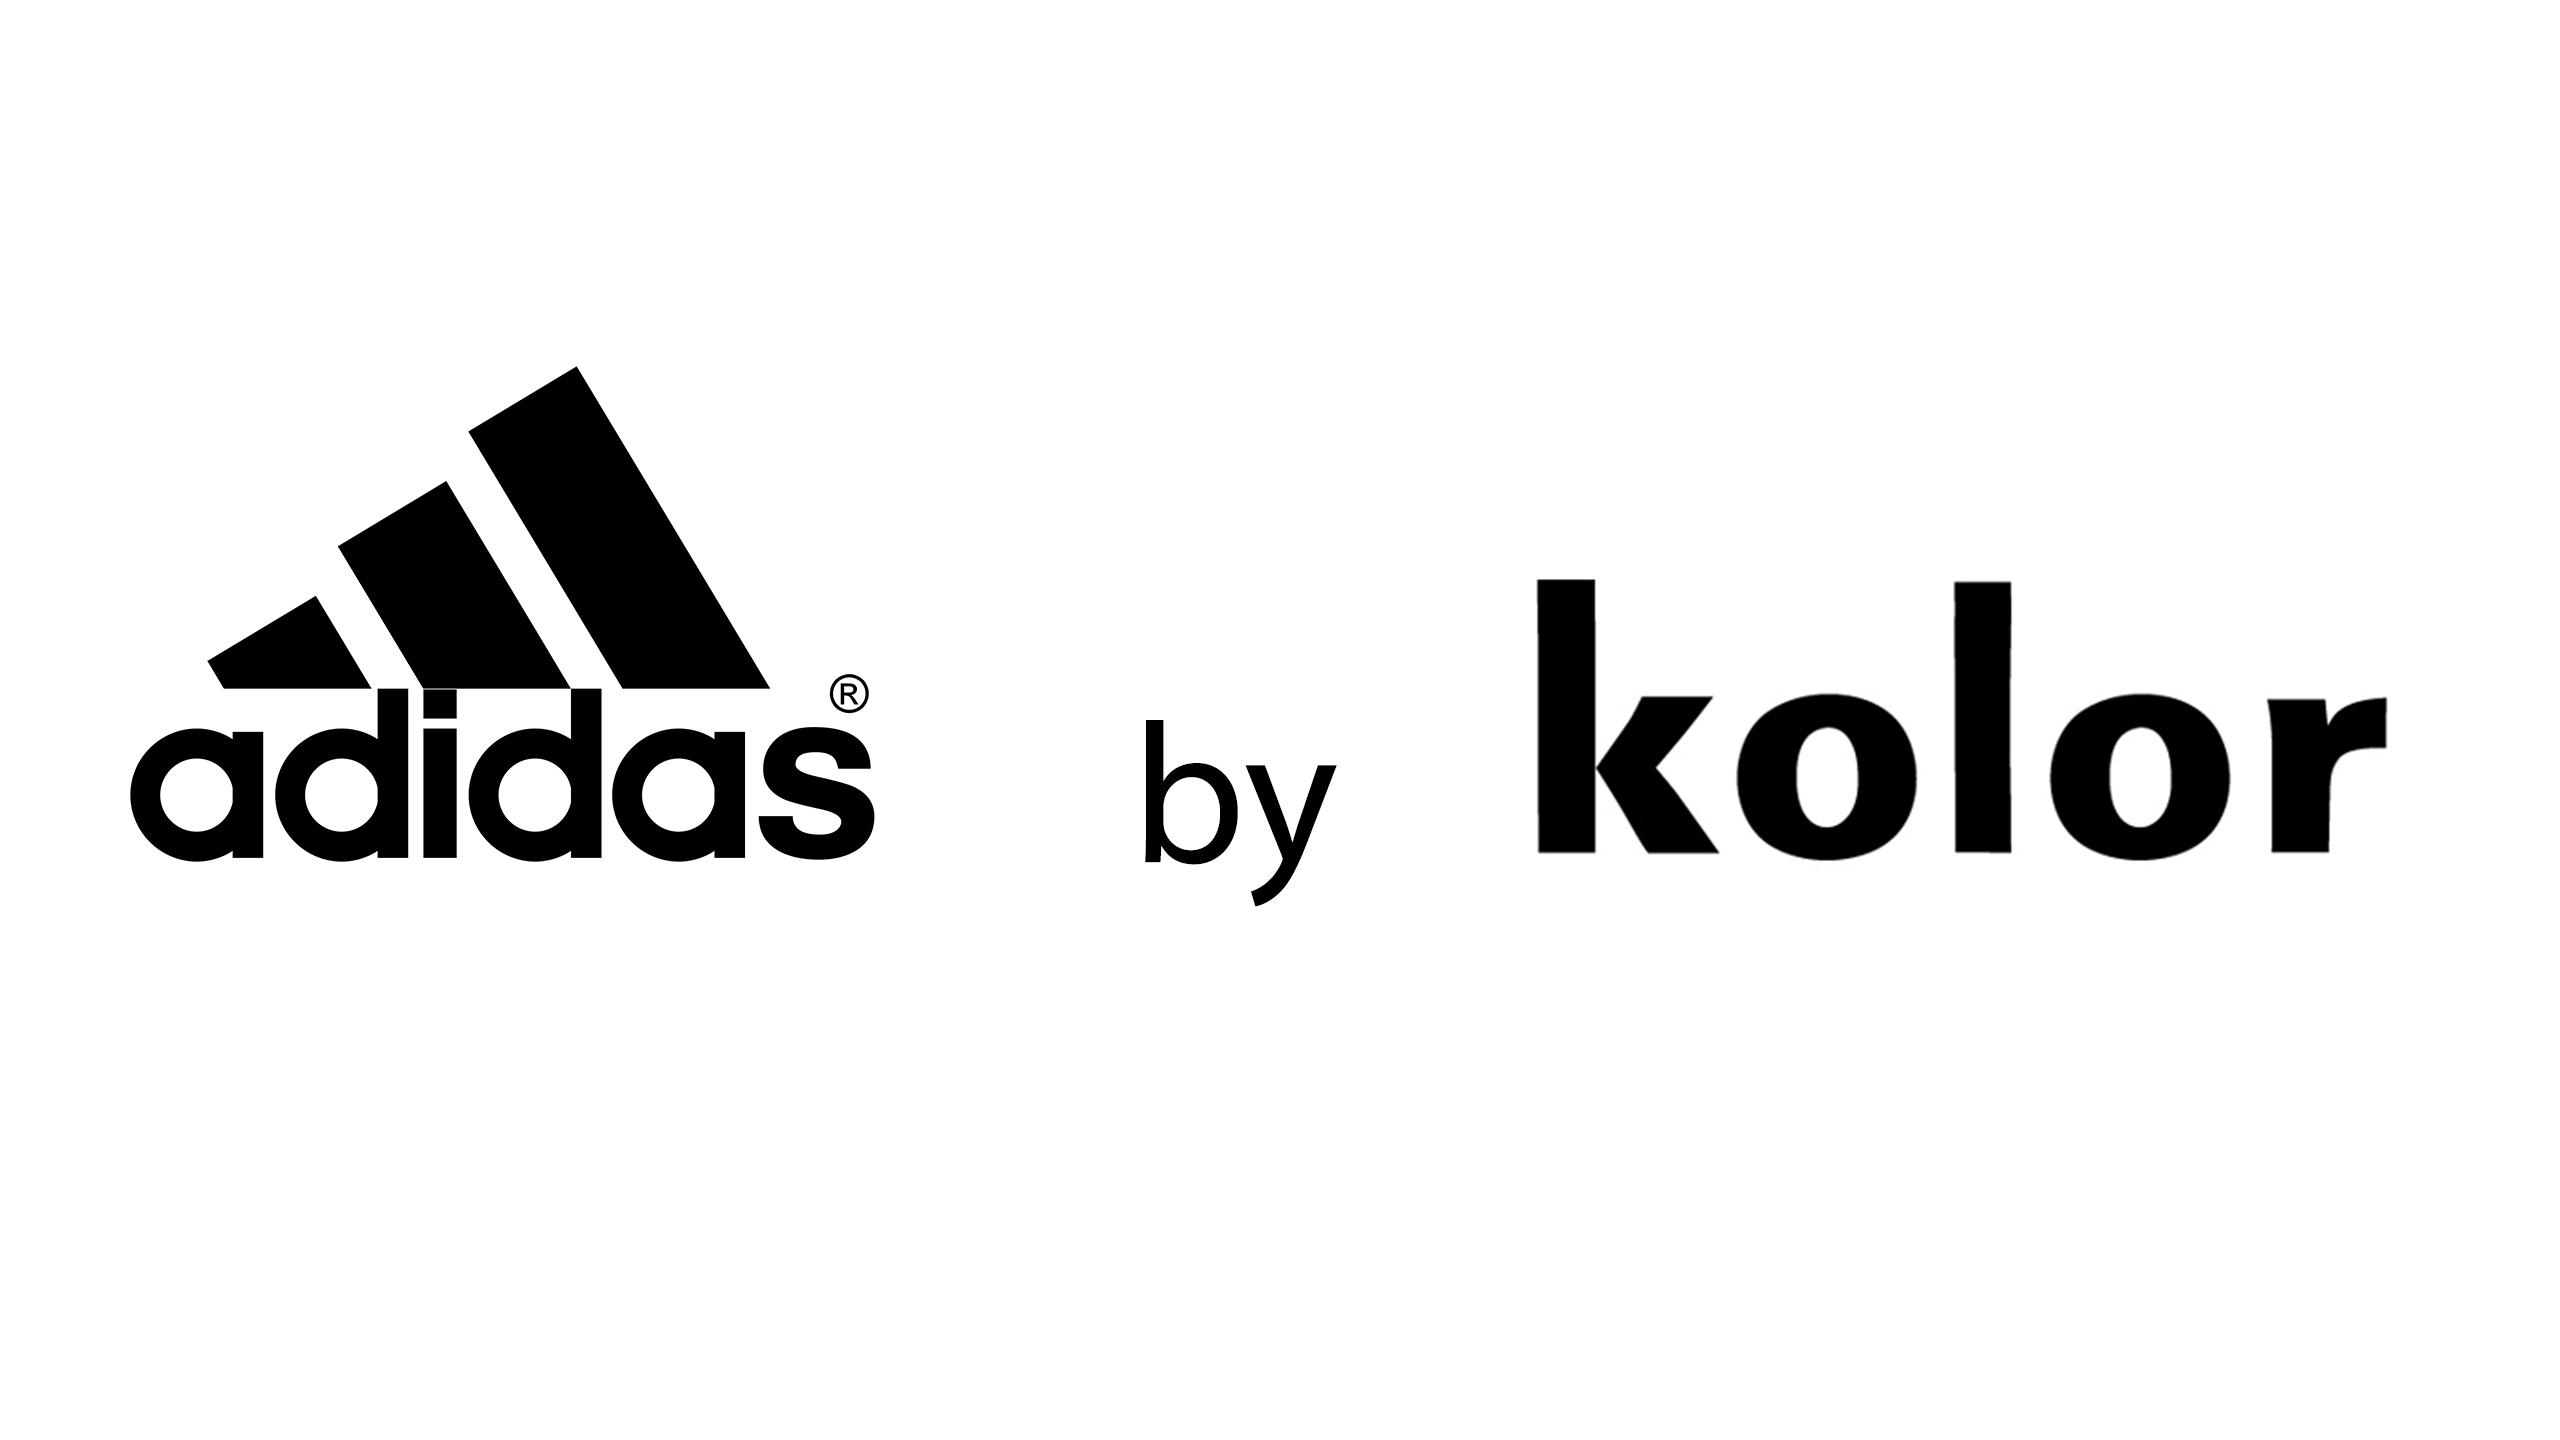 ADIDAS BY KOLOR